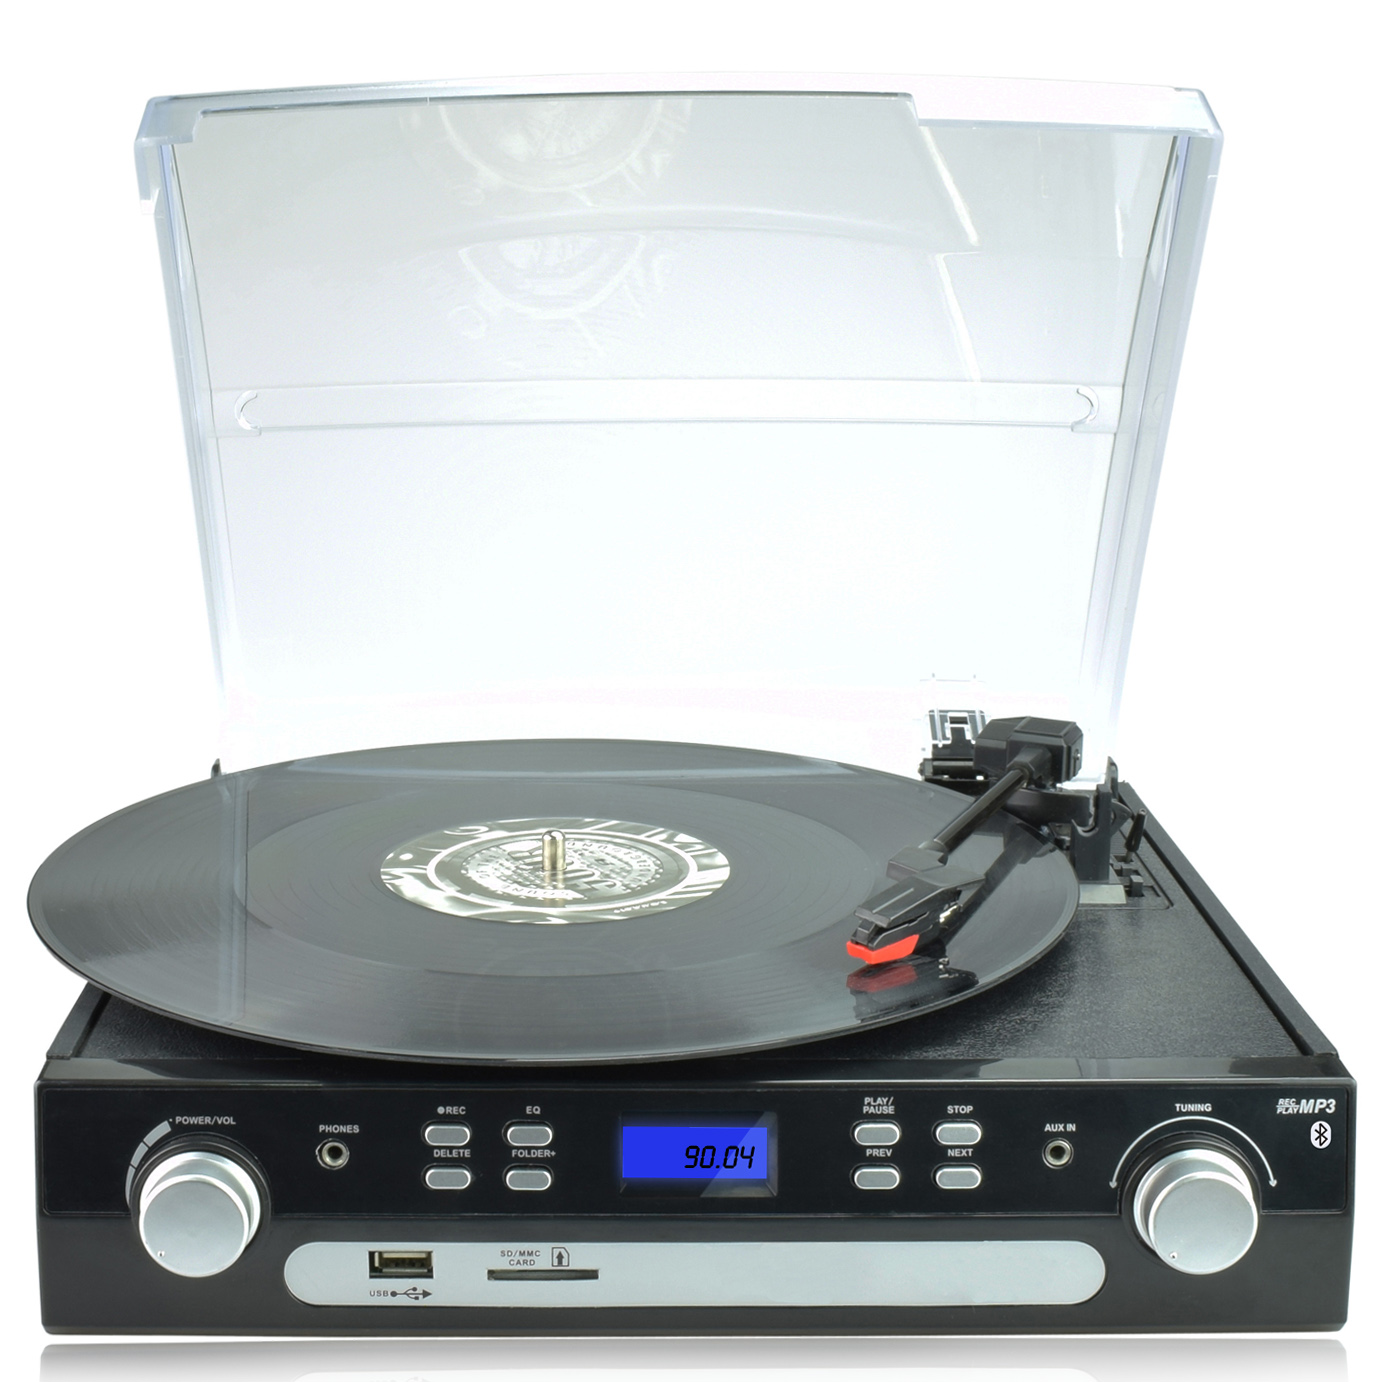 Digitnow Bluetooth Viny Record Player Turntable, Cassette,Radio and Aux in with USB Port & SD Encoding- Remote Control,Built-in stereo speaker,Stand Alone Music Player ,Audio Built In Amplifier